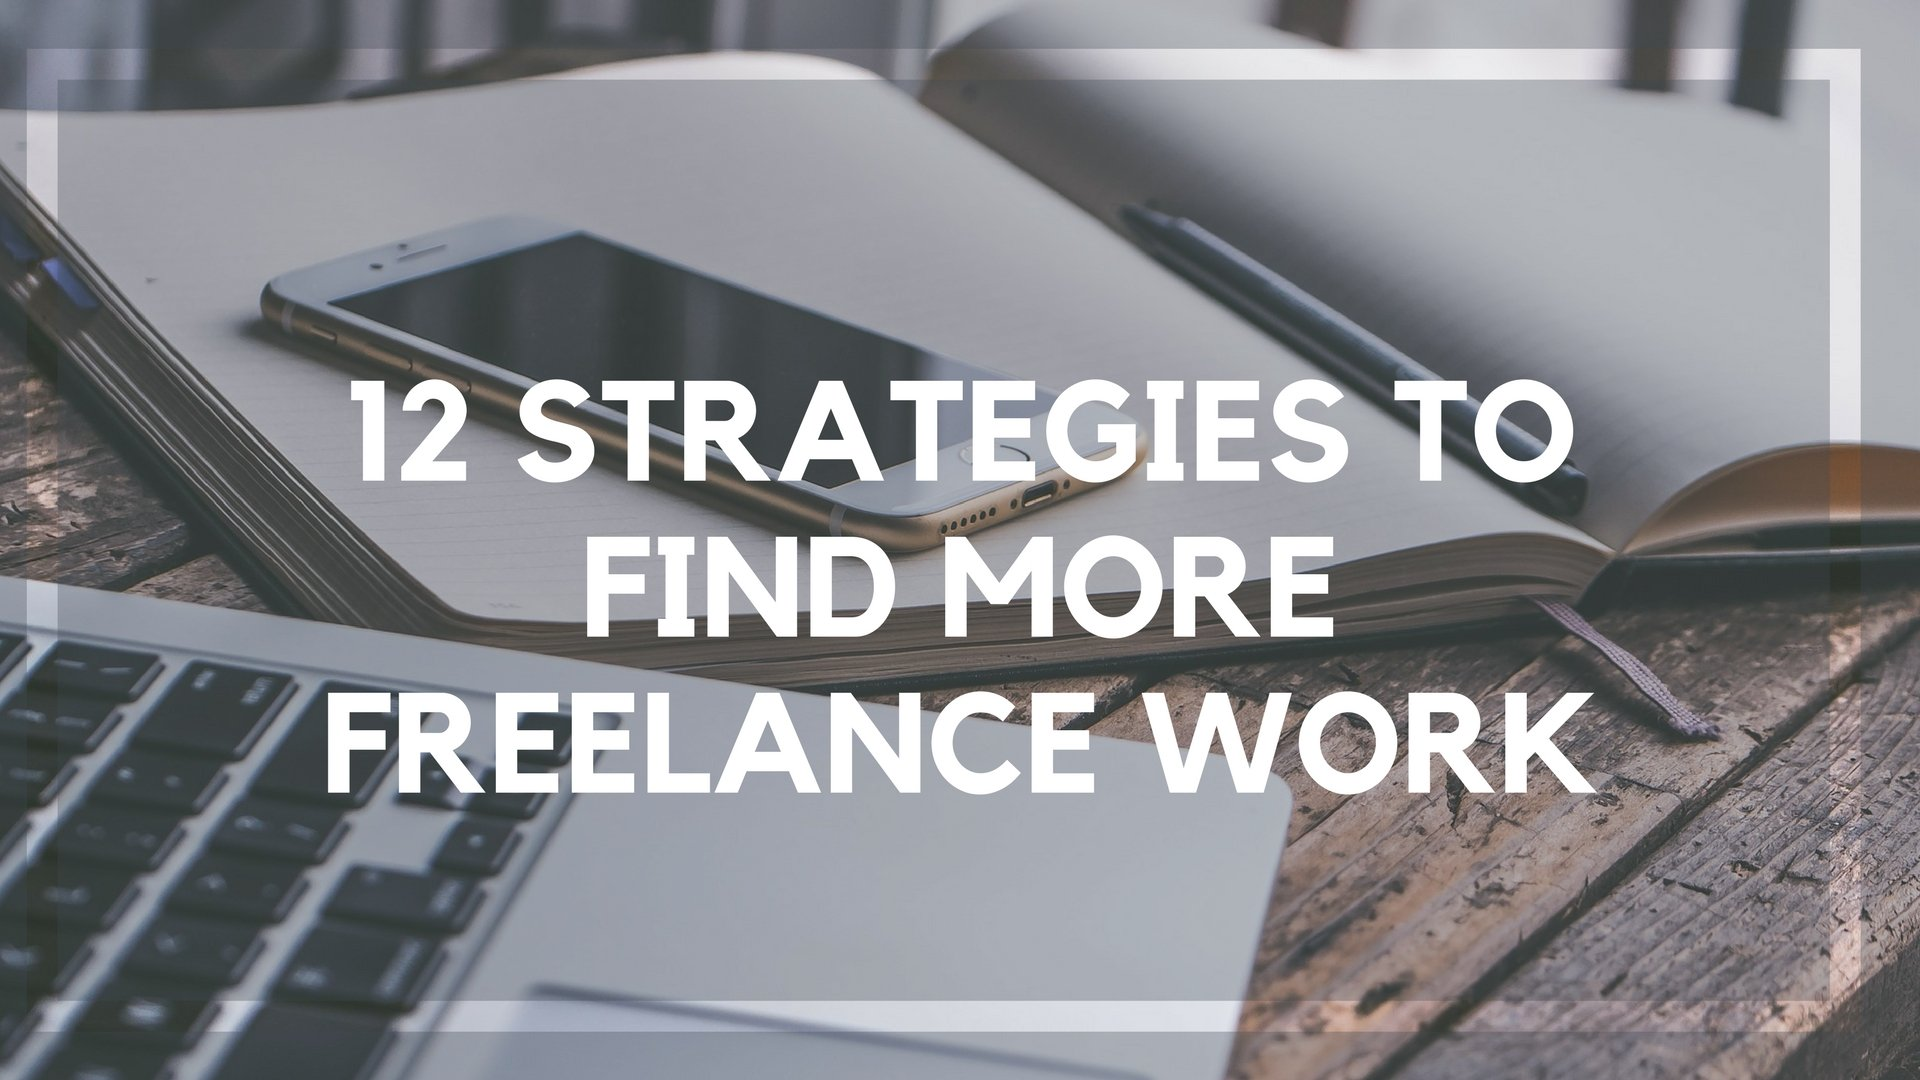 12 Strategies to Find More Freelance Work